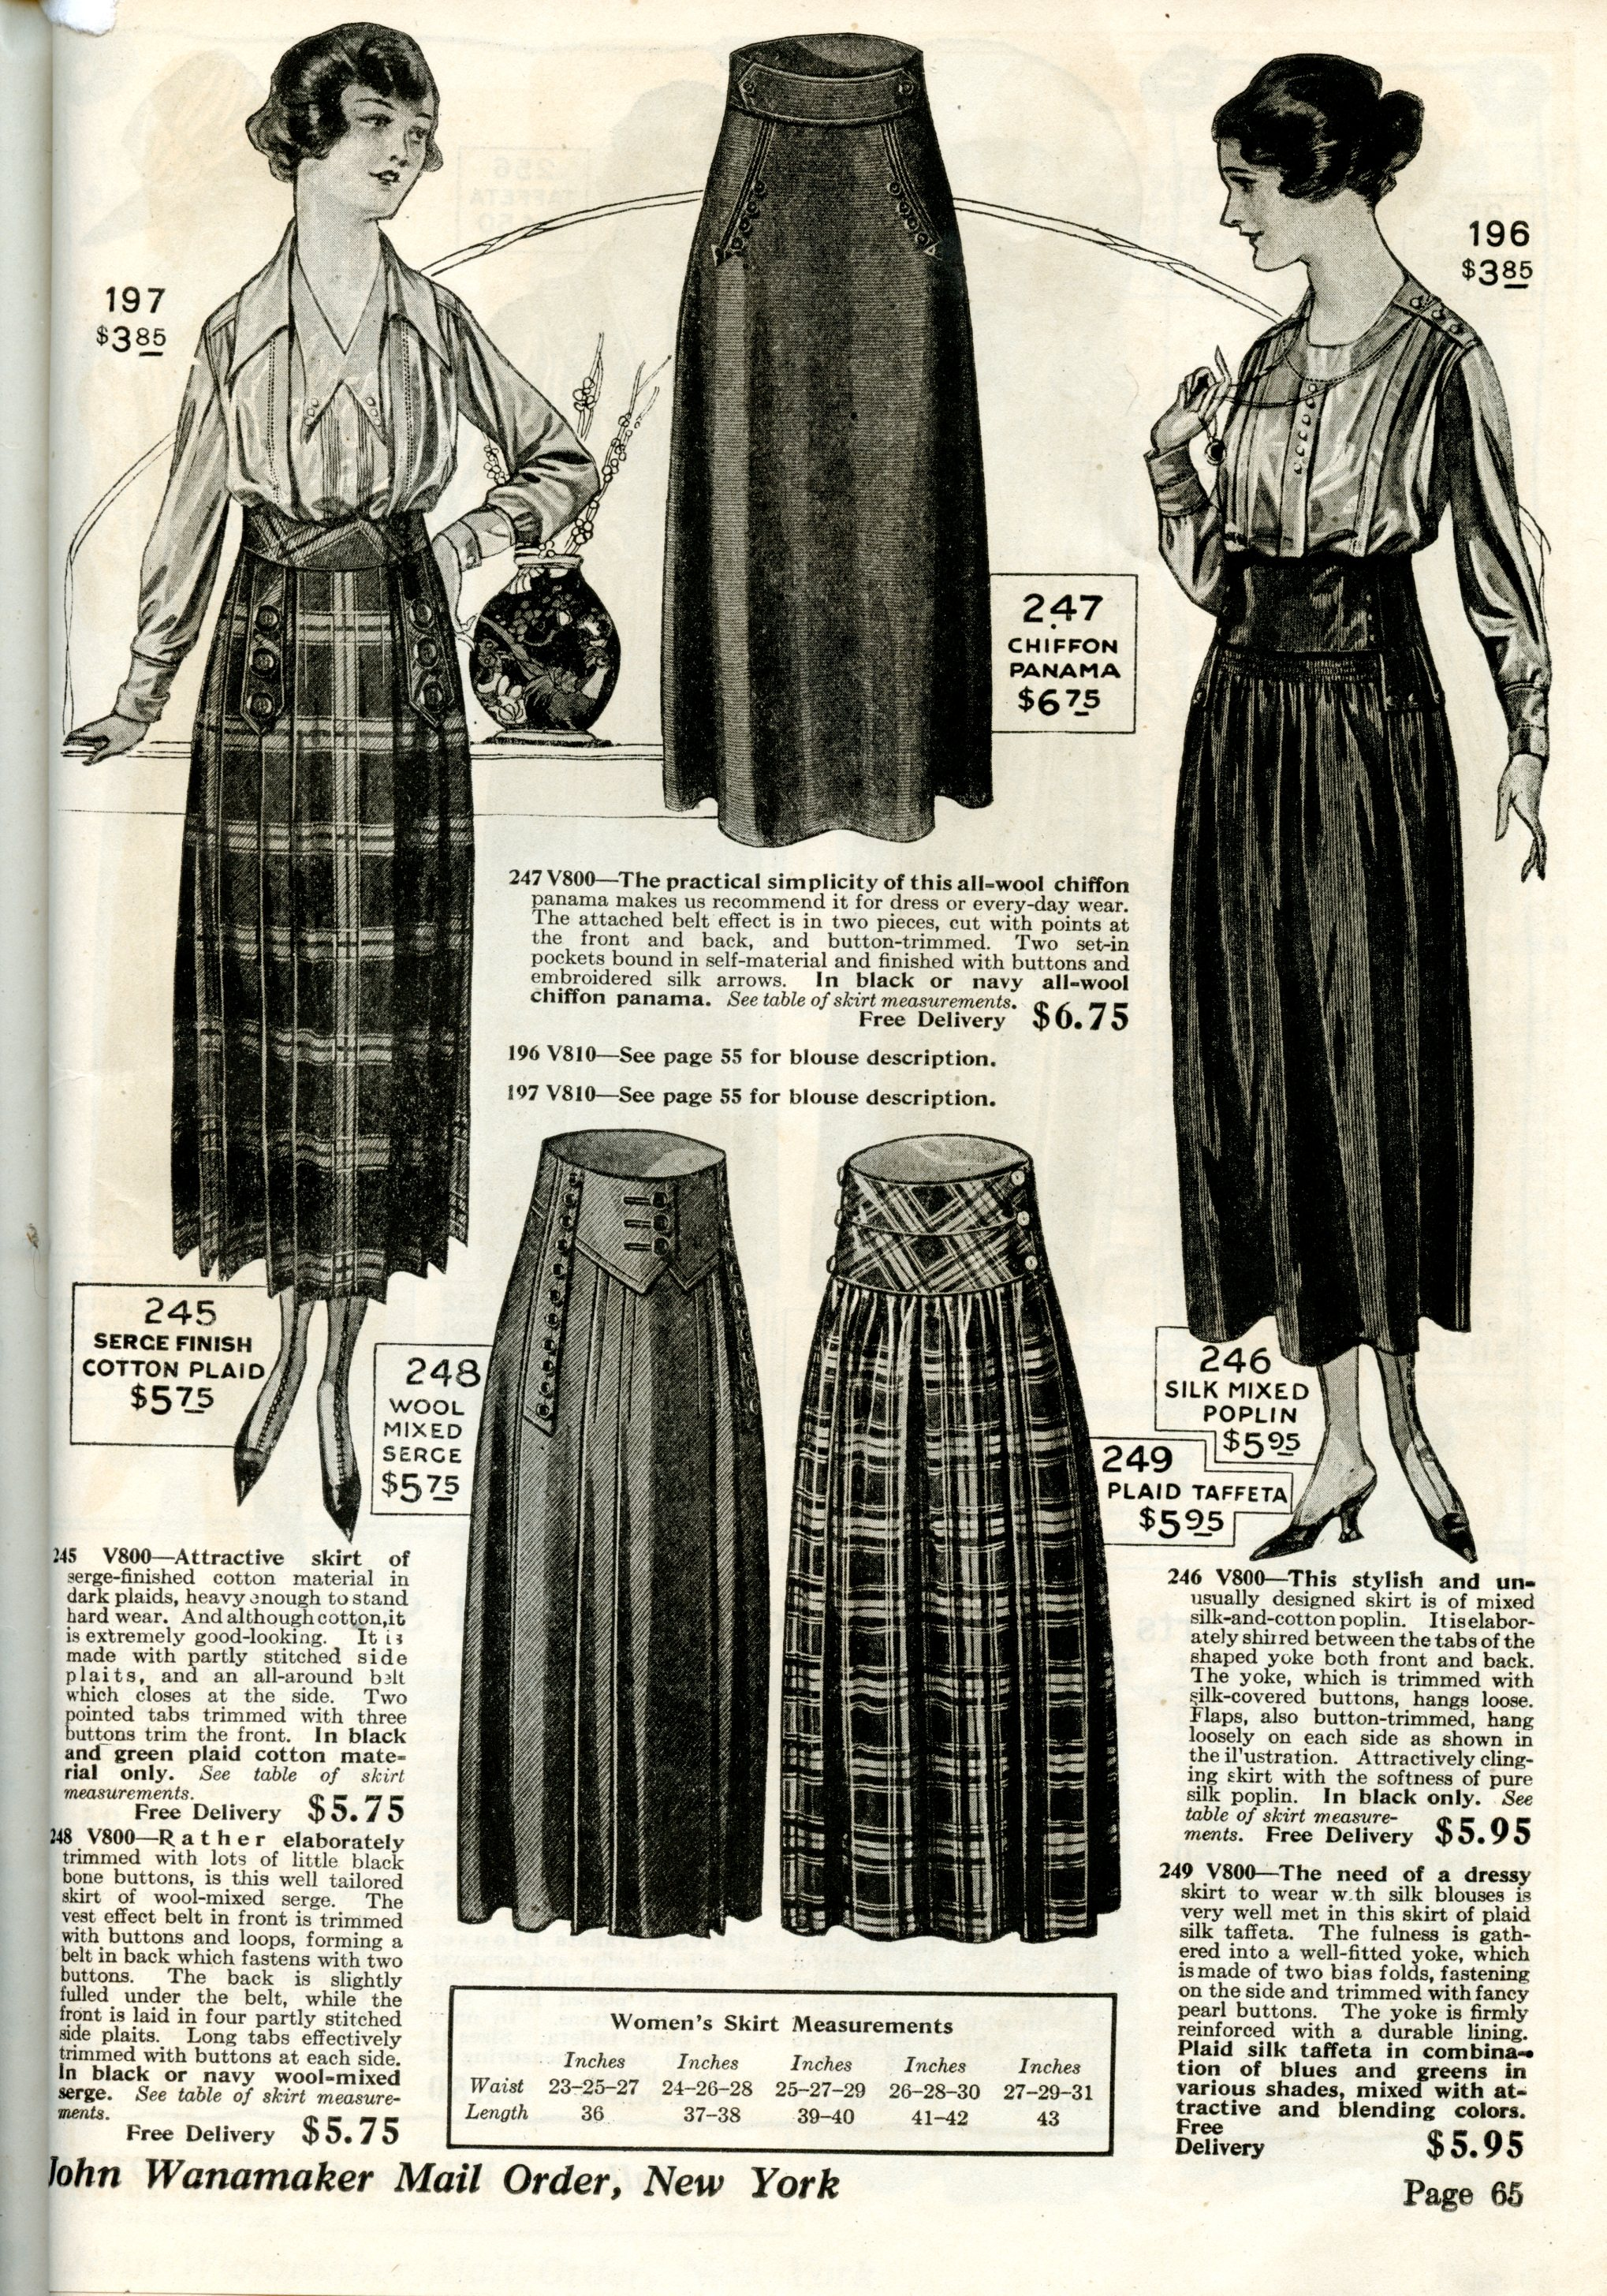 WWI Fashion Skirts And Blouses 1918 1919 Wearing